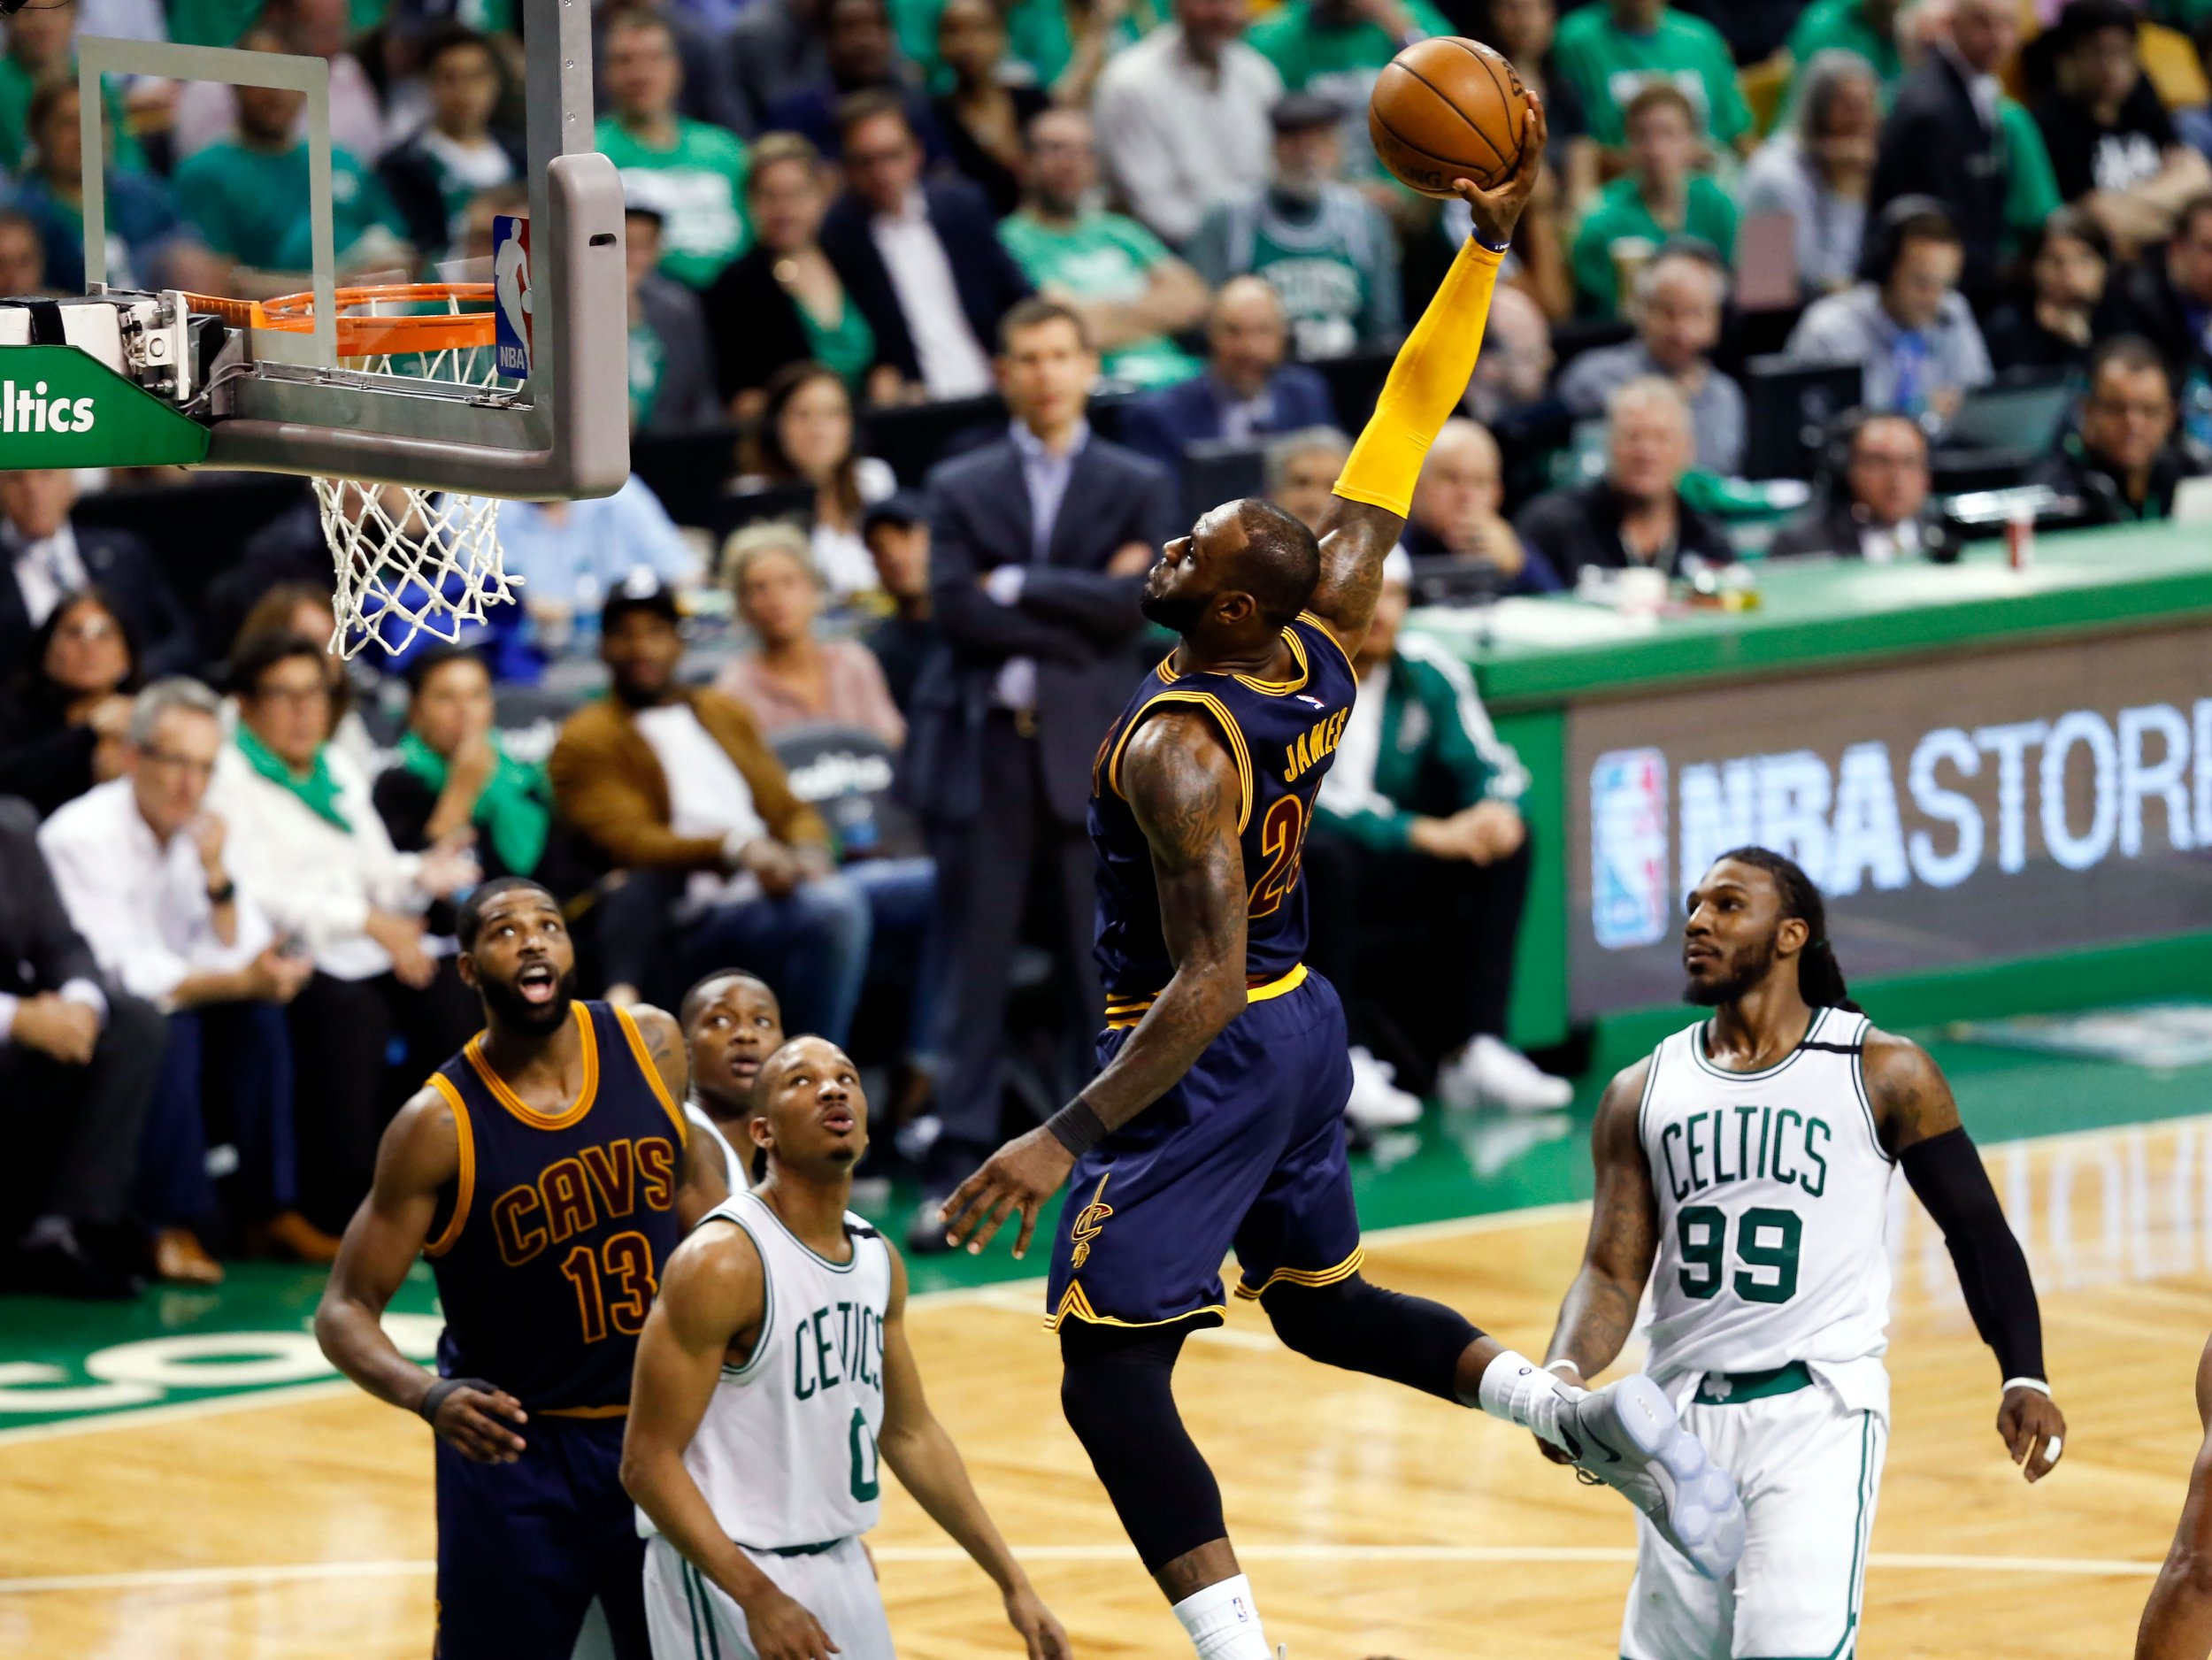 NBA Playoffs 2017: Watch The Moment LeBron James Passed Michael Jordan with 5,989th Point